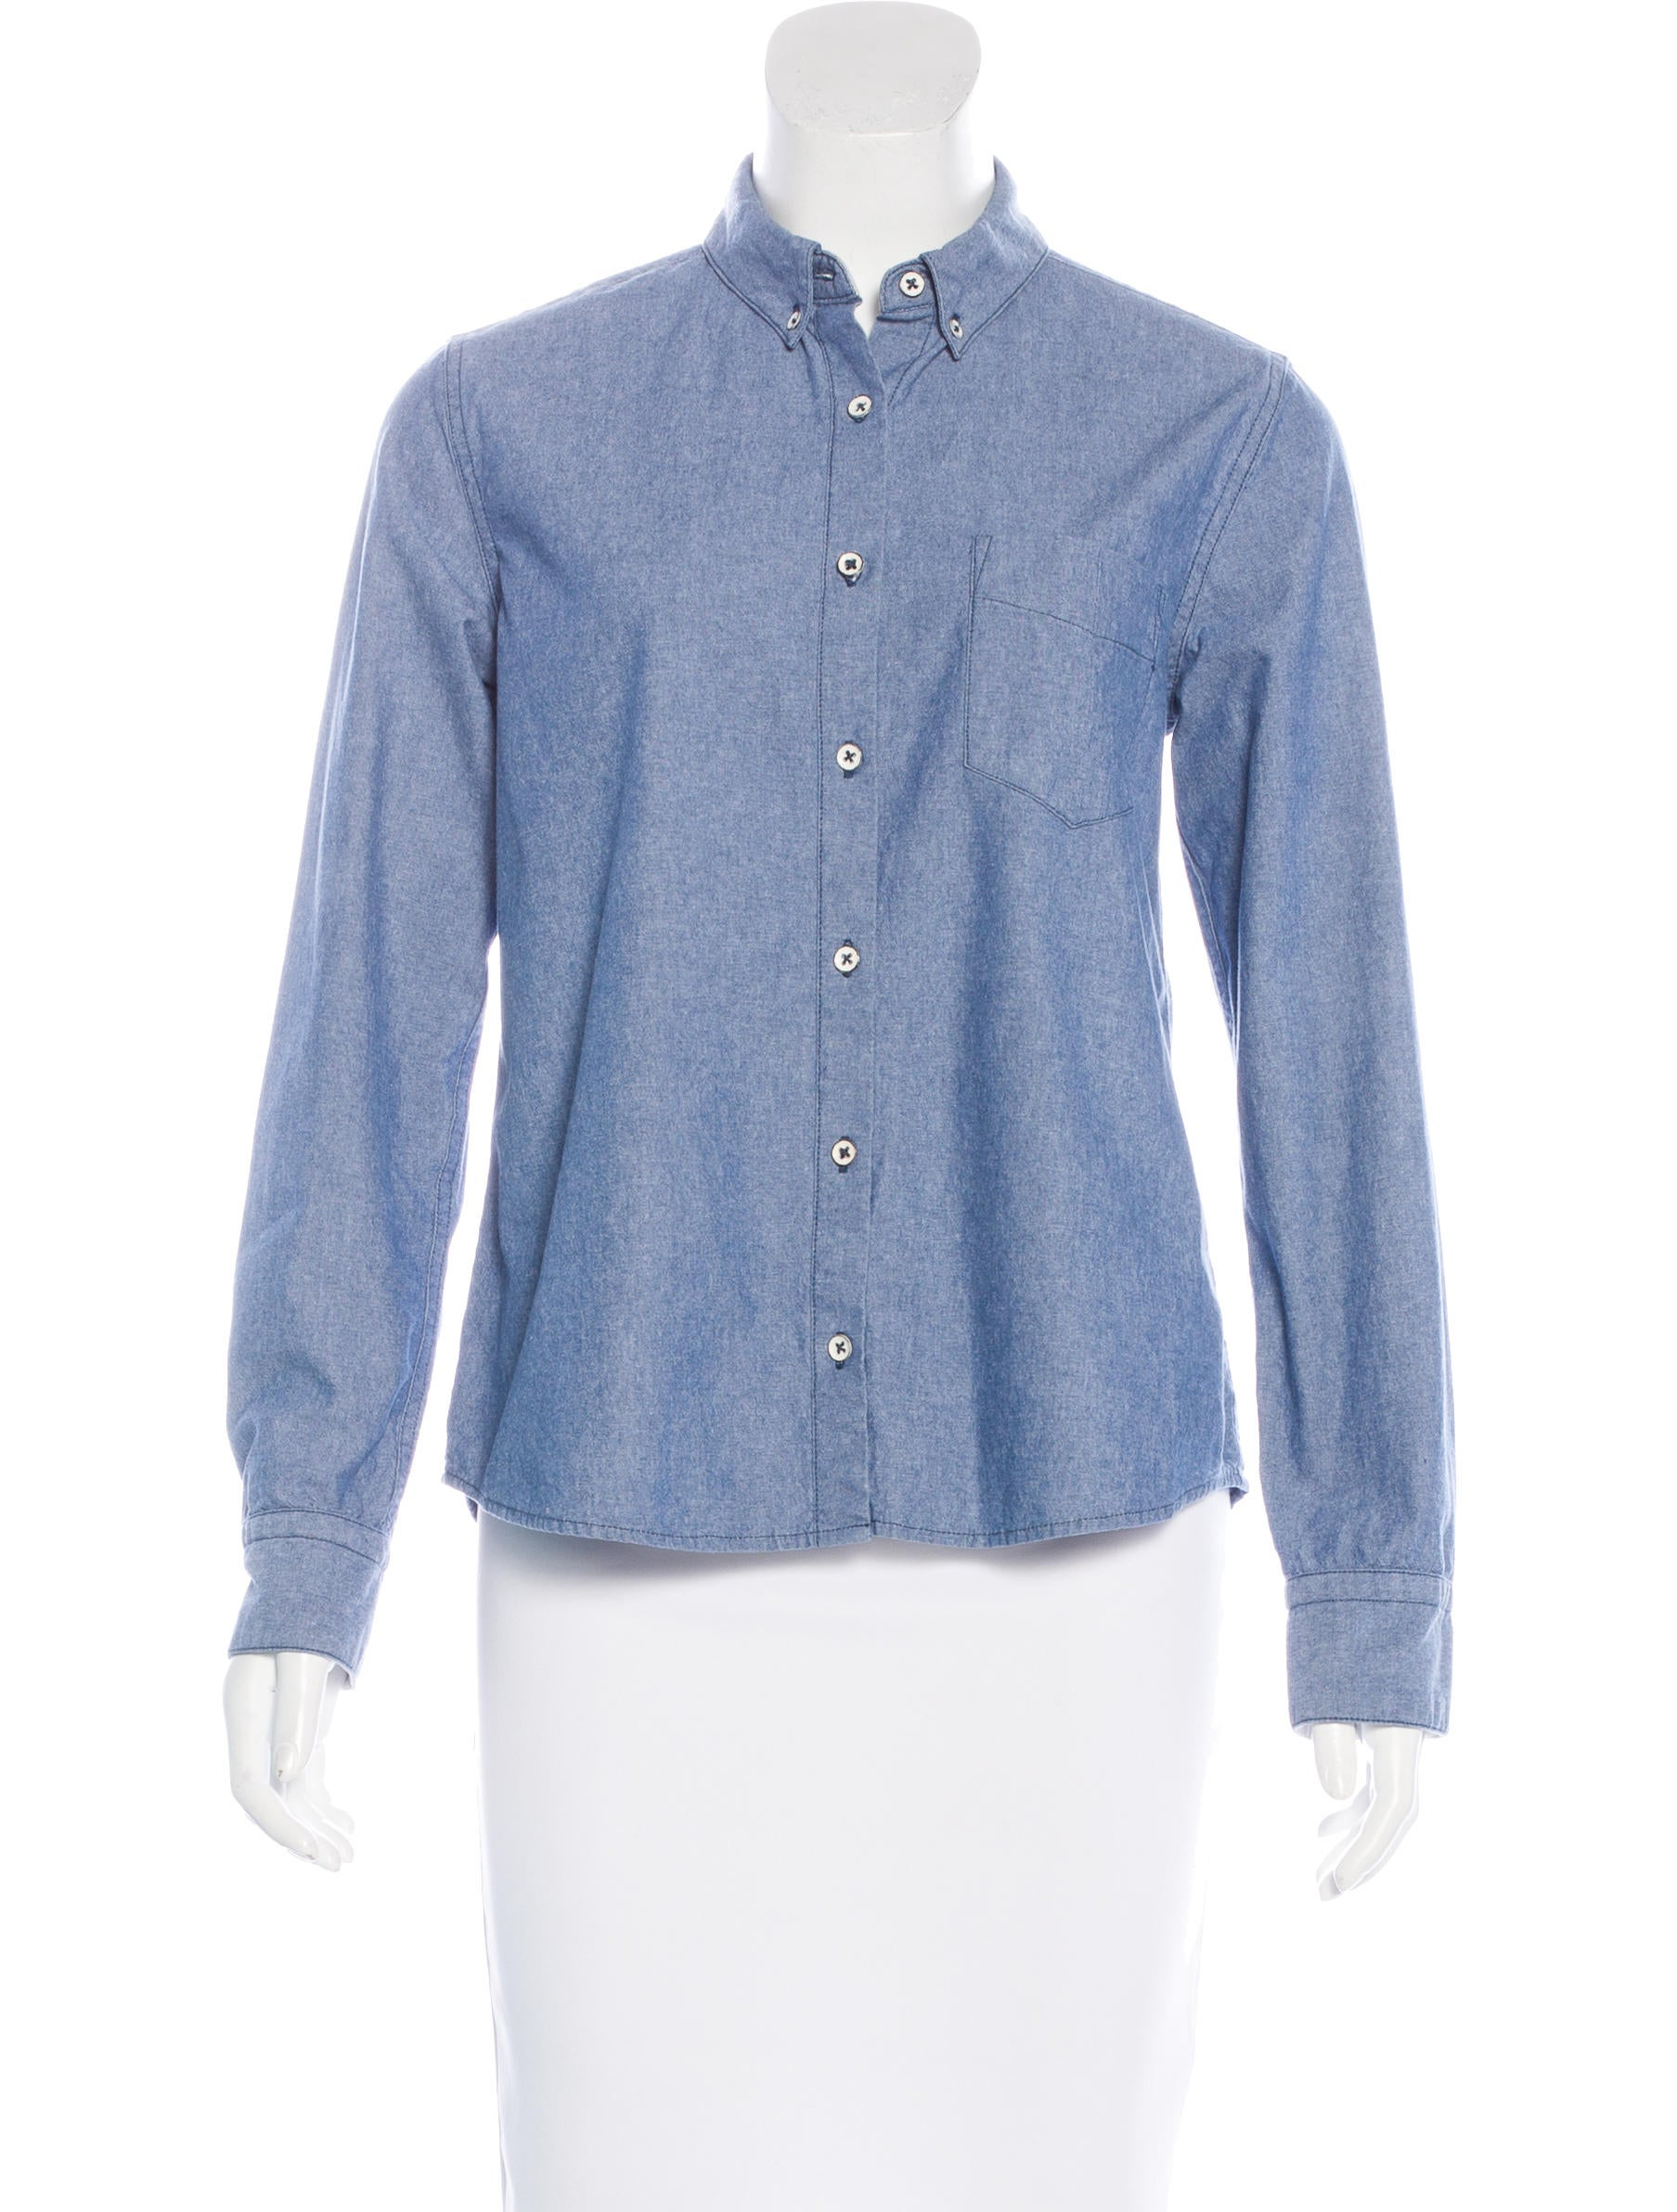 Rag bone button up chambray top clothing wragb62838 for Chambray top